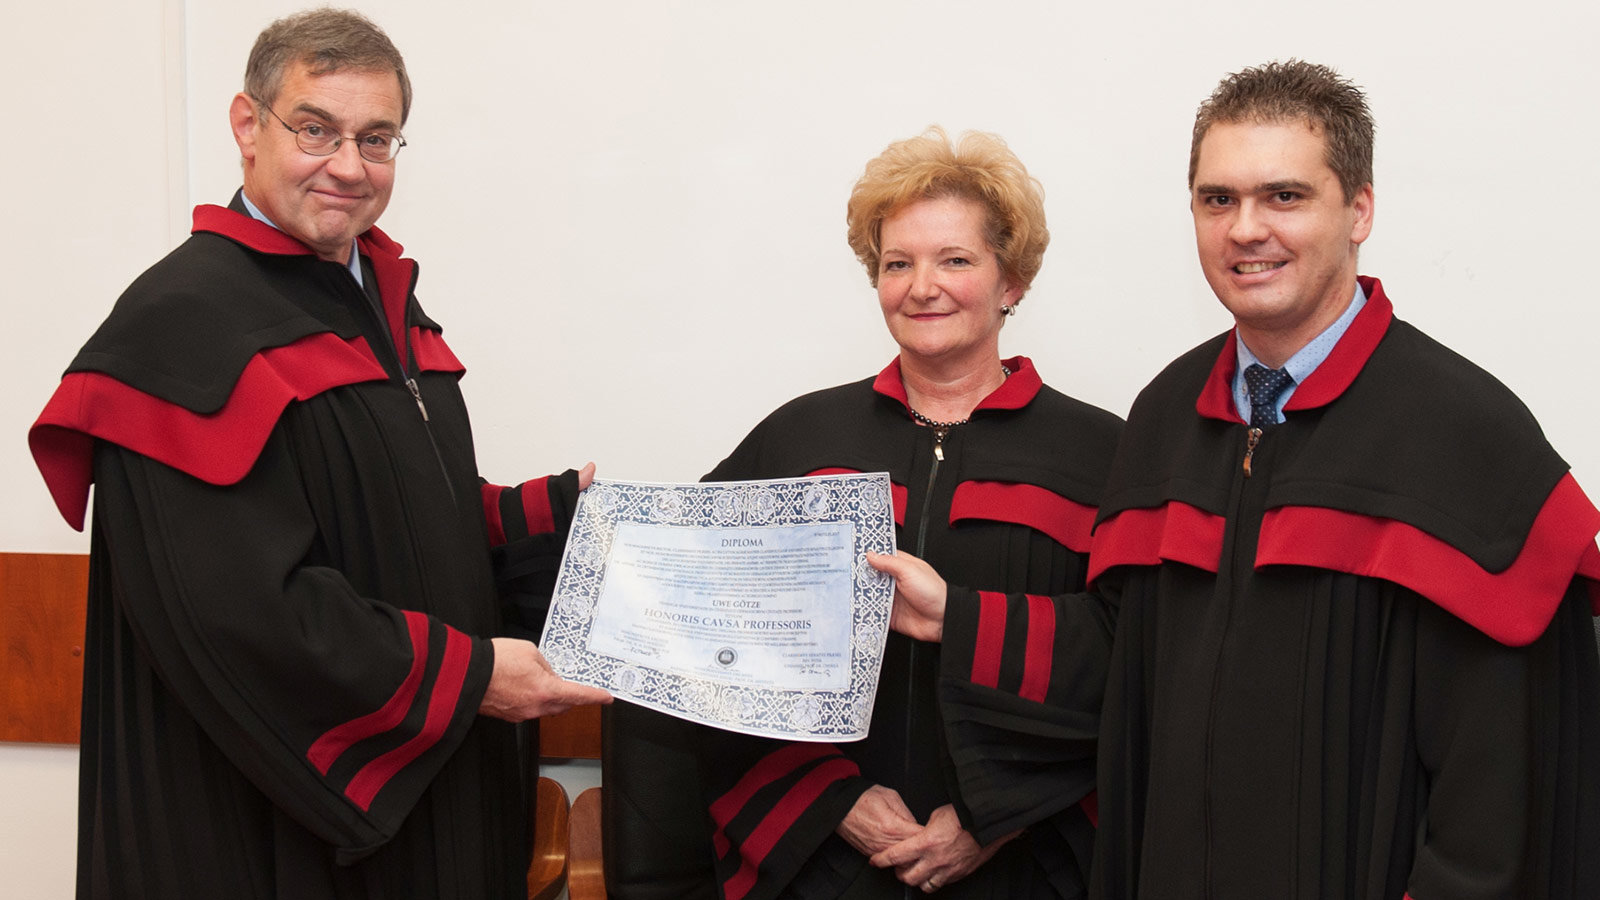 A man gets a certificate from two other persons.